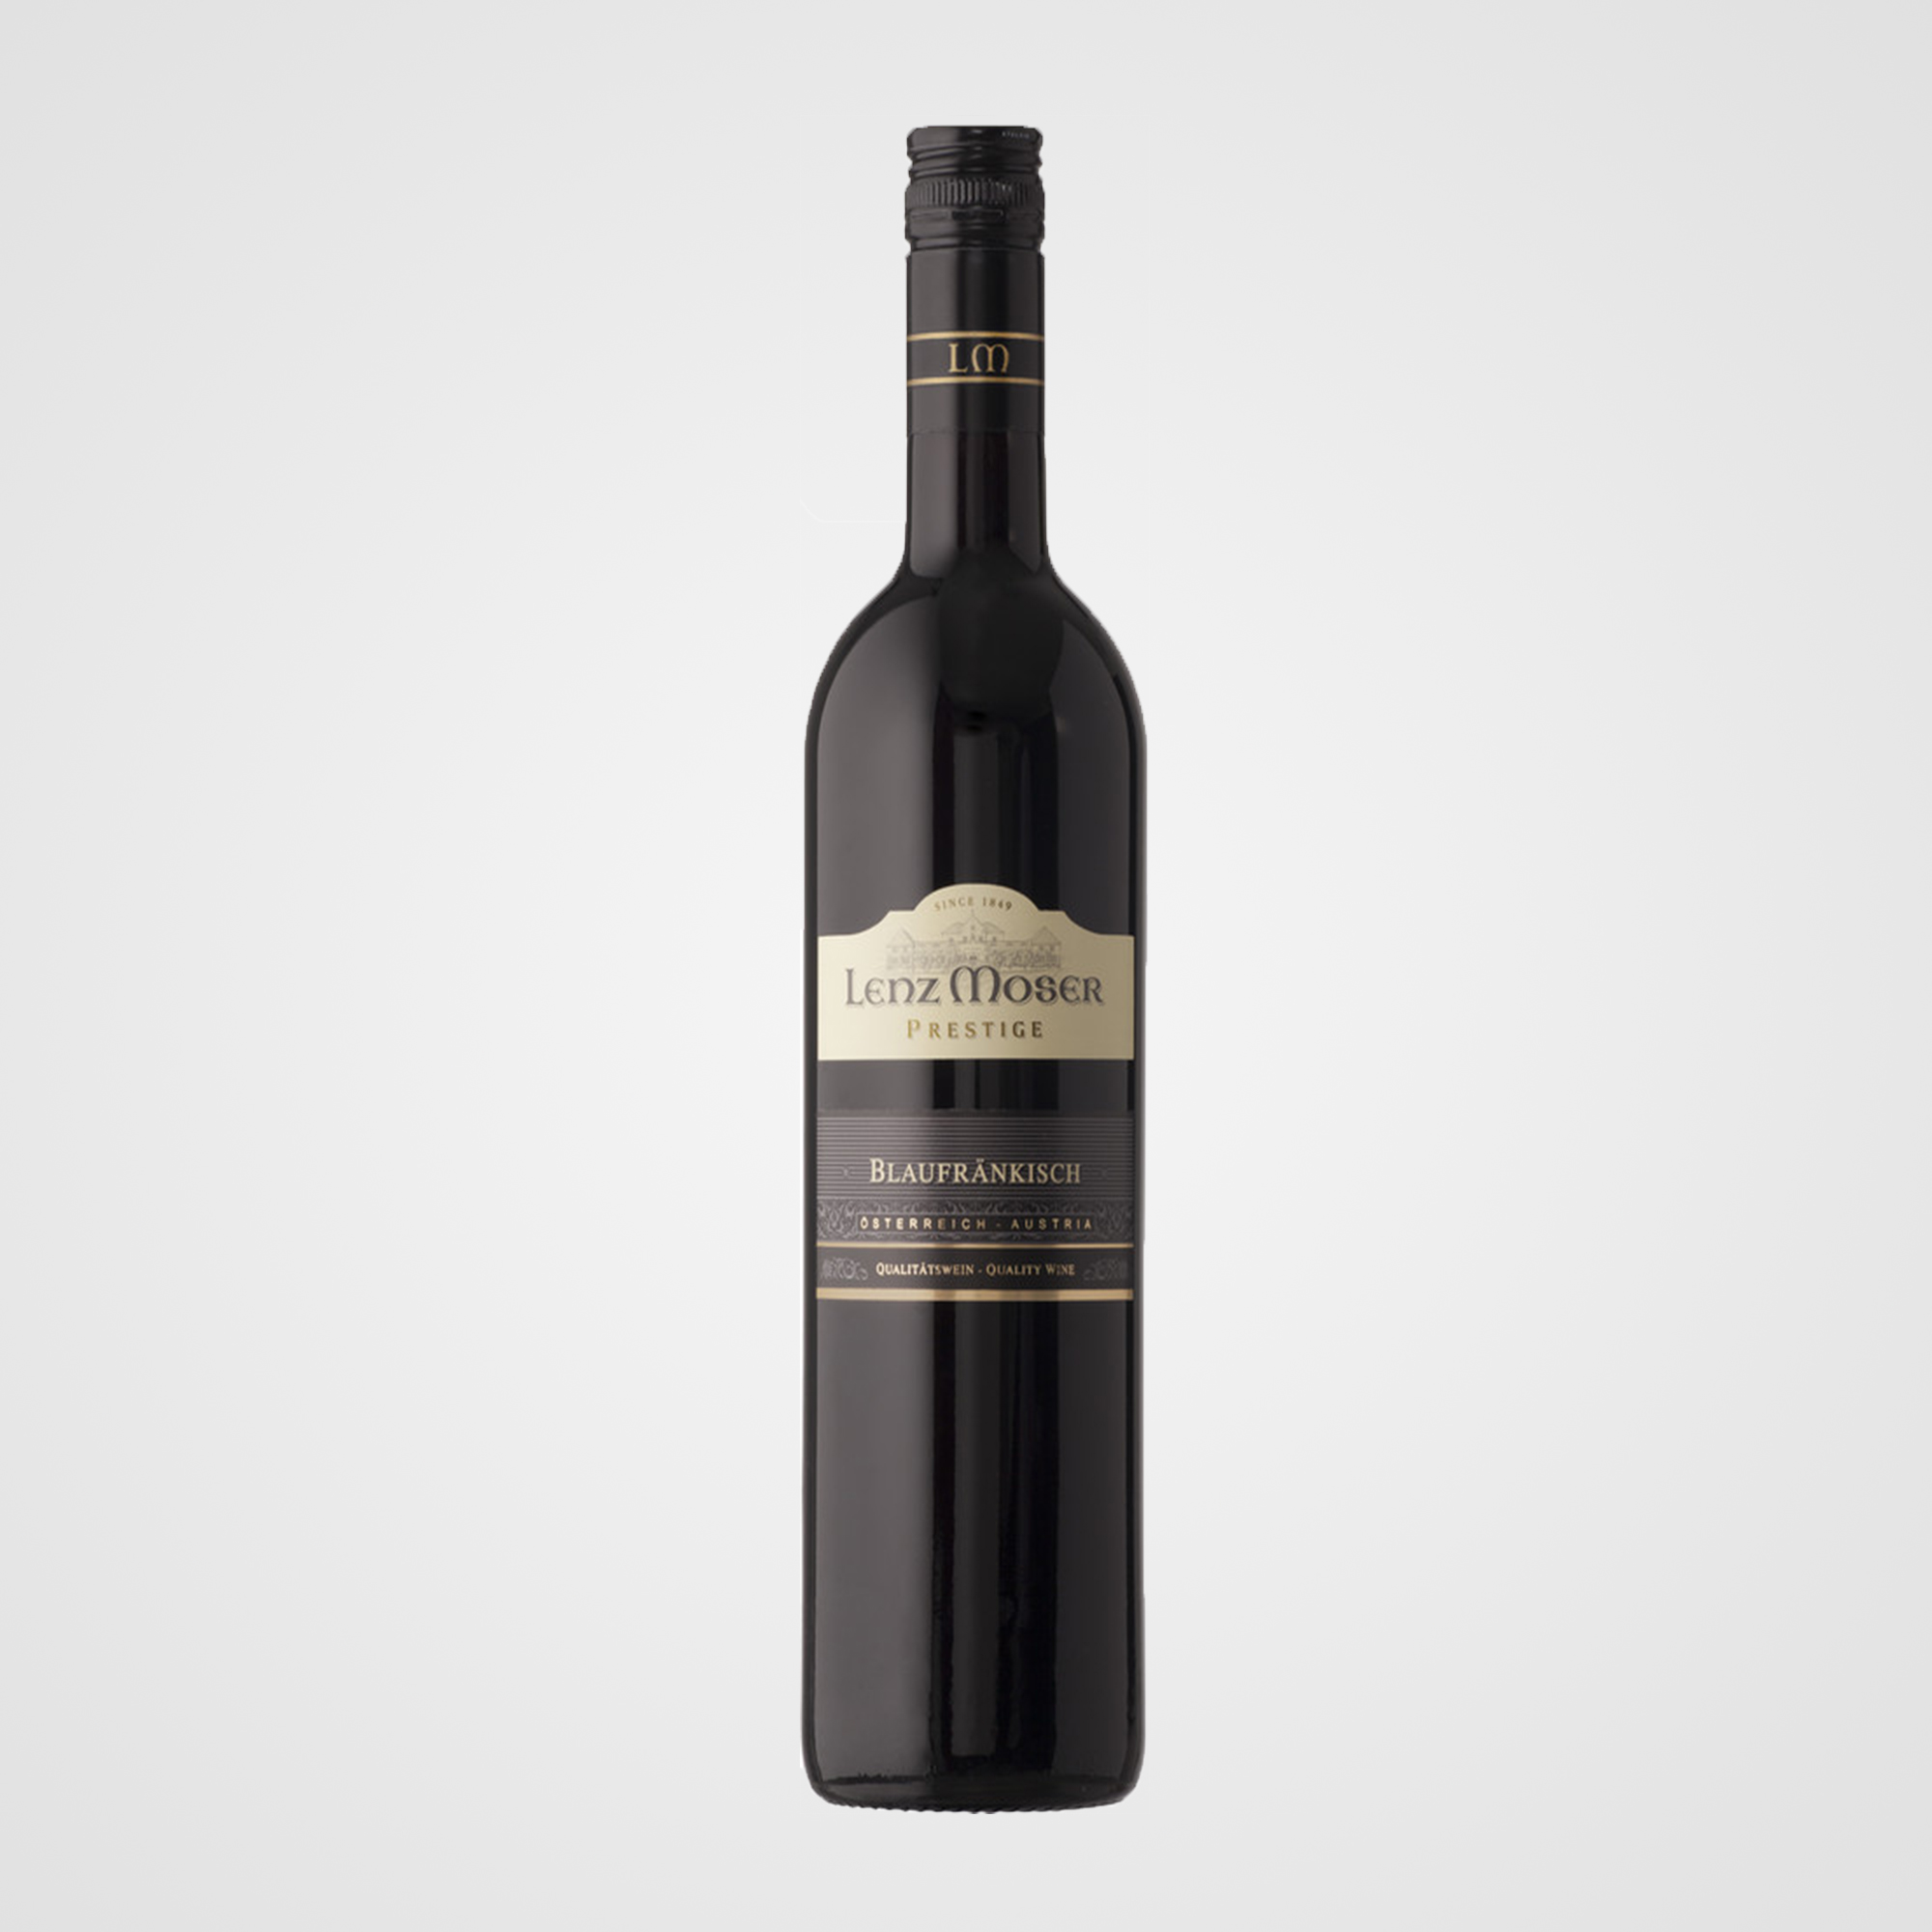 Blauer Zweigelt Reserve - Quality wine, dry, Austria.Tasting Notes: fruity and velvety, cherry notes, smooth, full-bodied, harmonious13.0% abv.